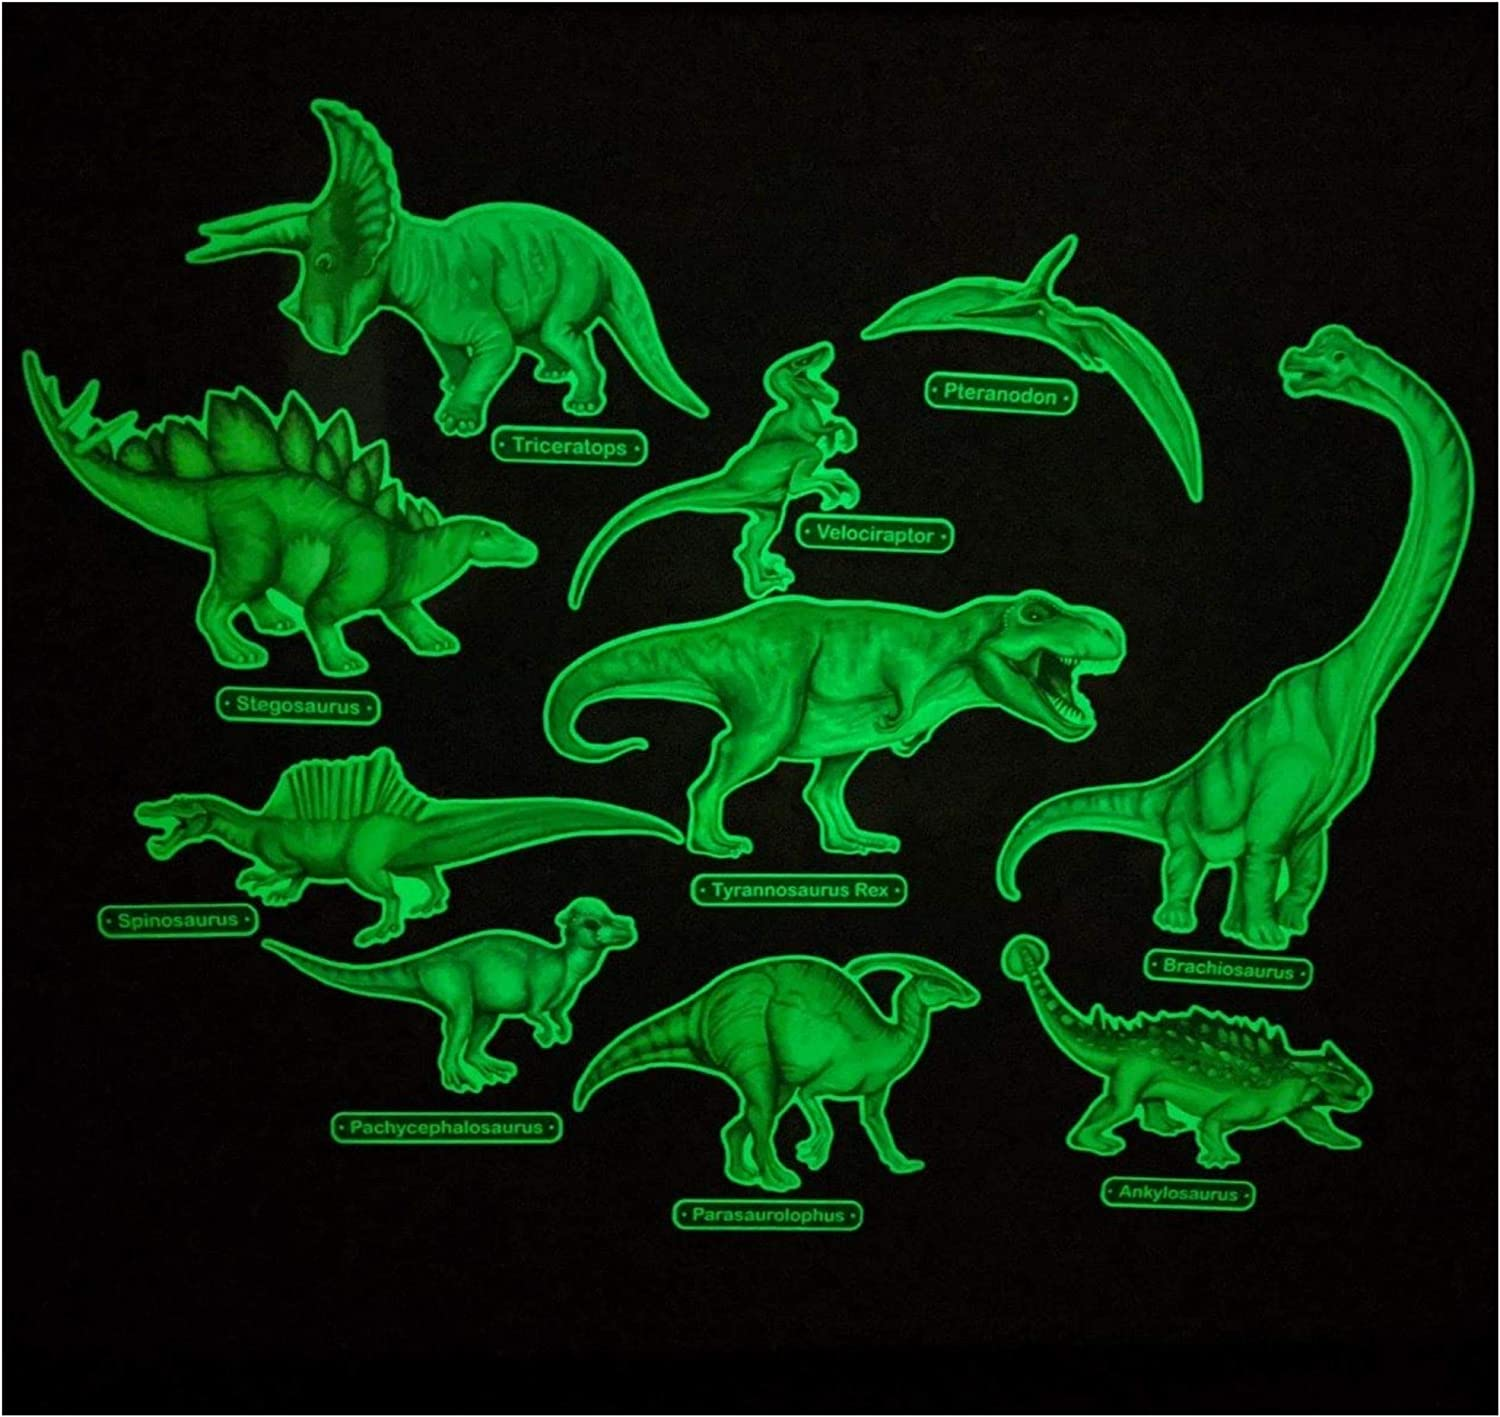 Glow in The Dark Dinosaur Wall Stickers - 10 Large Bright Wall Decals for Bedroom Walls and Ceilings - for Boys Room and Girls Room - Set 1